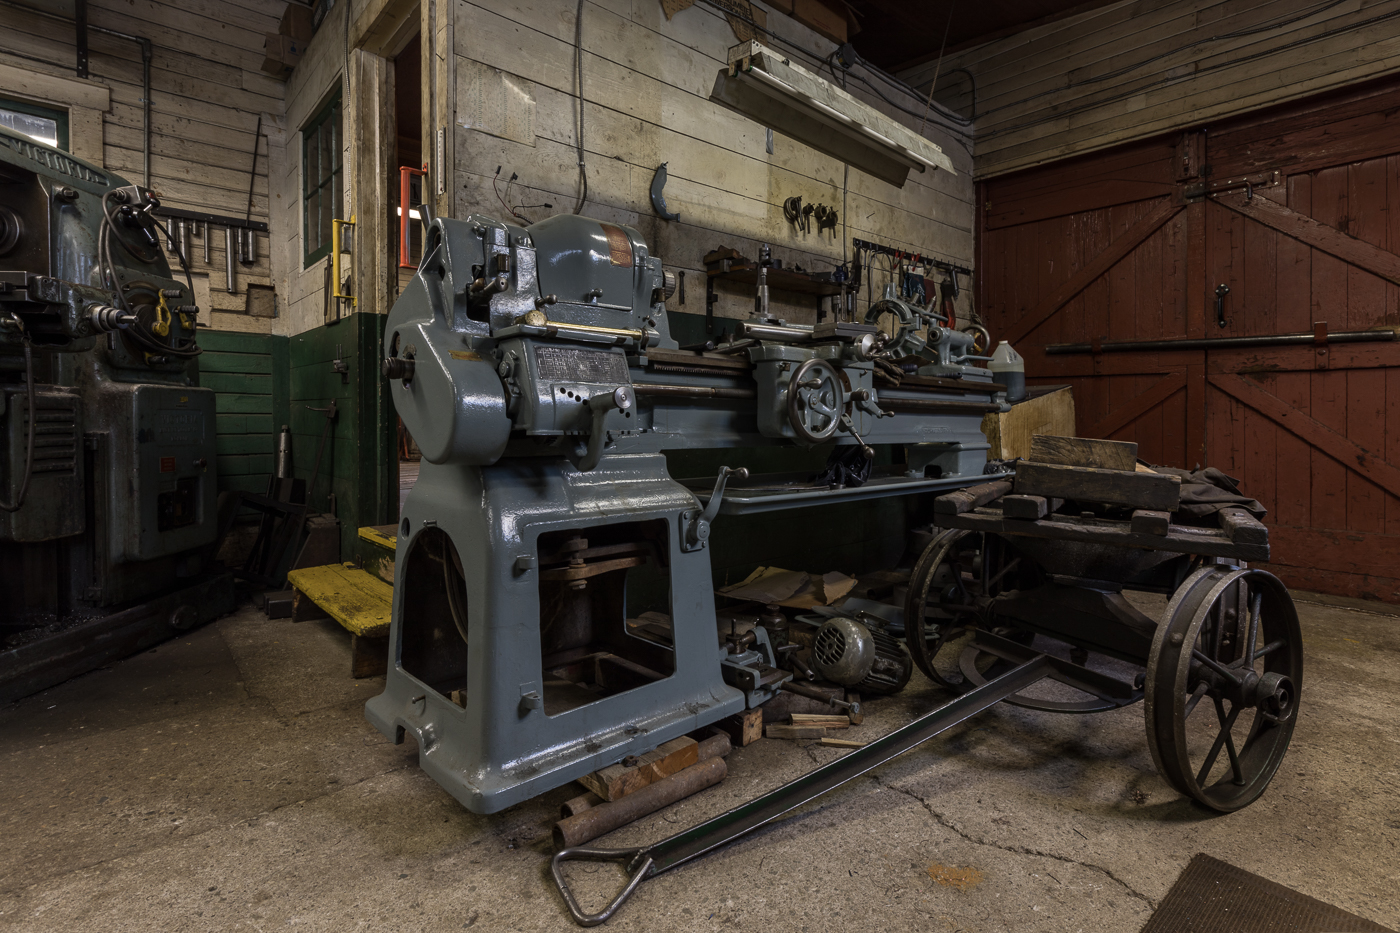 Lathe and Cart